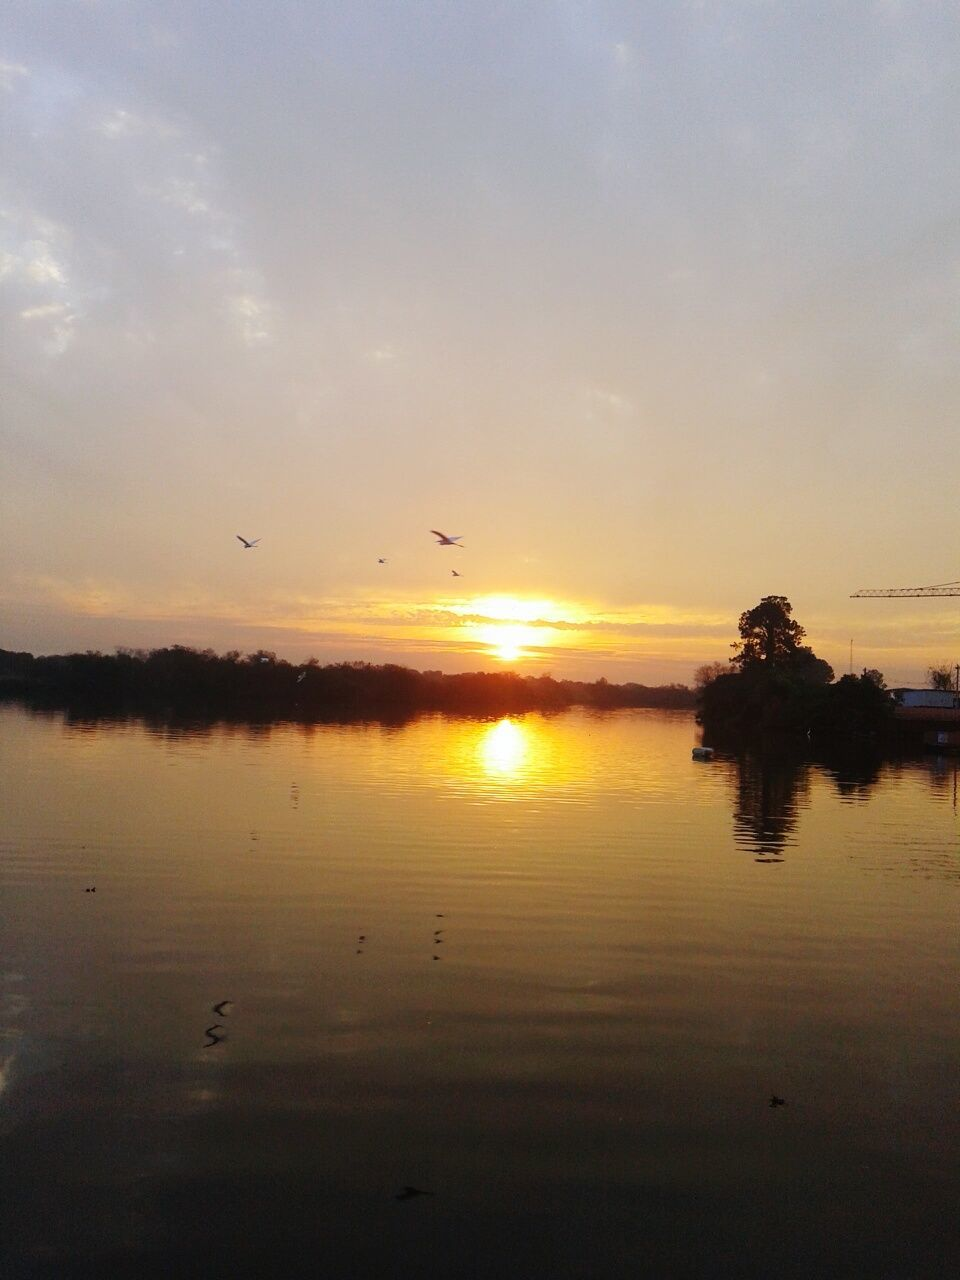 sunset, bird, animals in the wild, animal themes, reflection, flying, water, nature, beauty in nature, silhouette, scenics, tranquil scene, large group of animals, animal wildlife, sky, wildlife, flock of birds, tranquility, lake, no people, outdoors, sun, mid-air, spread wings, tree, day